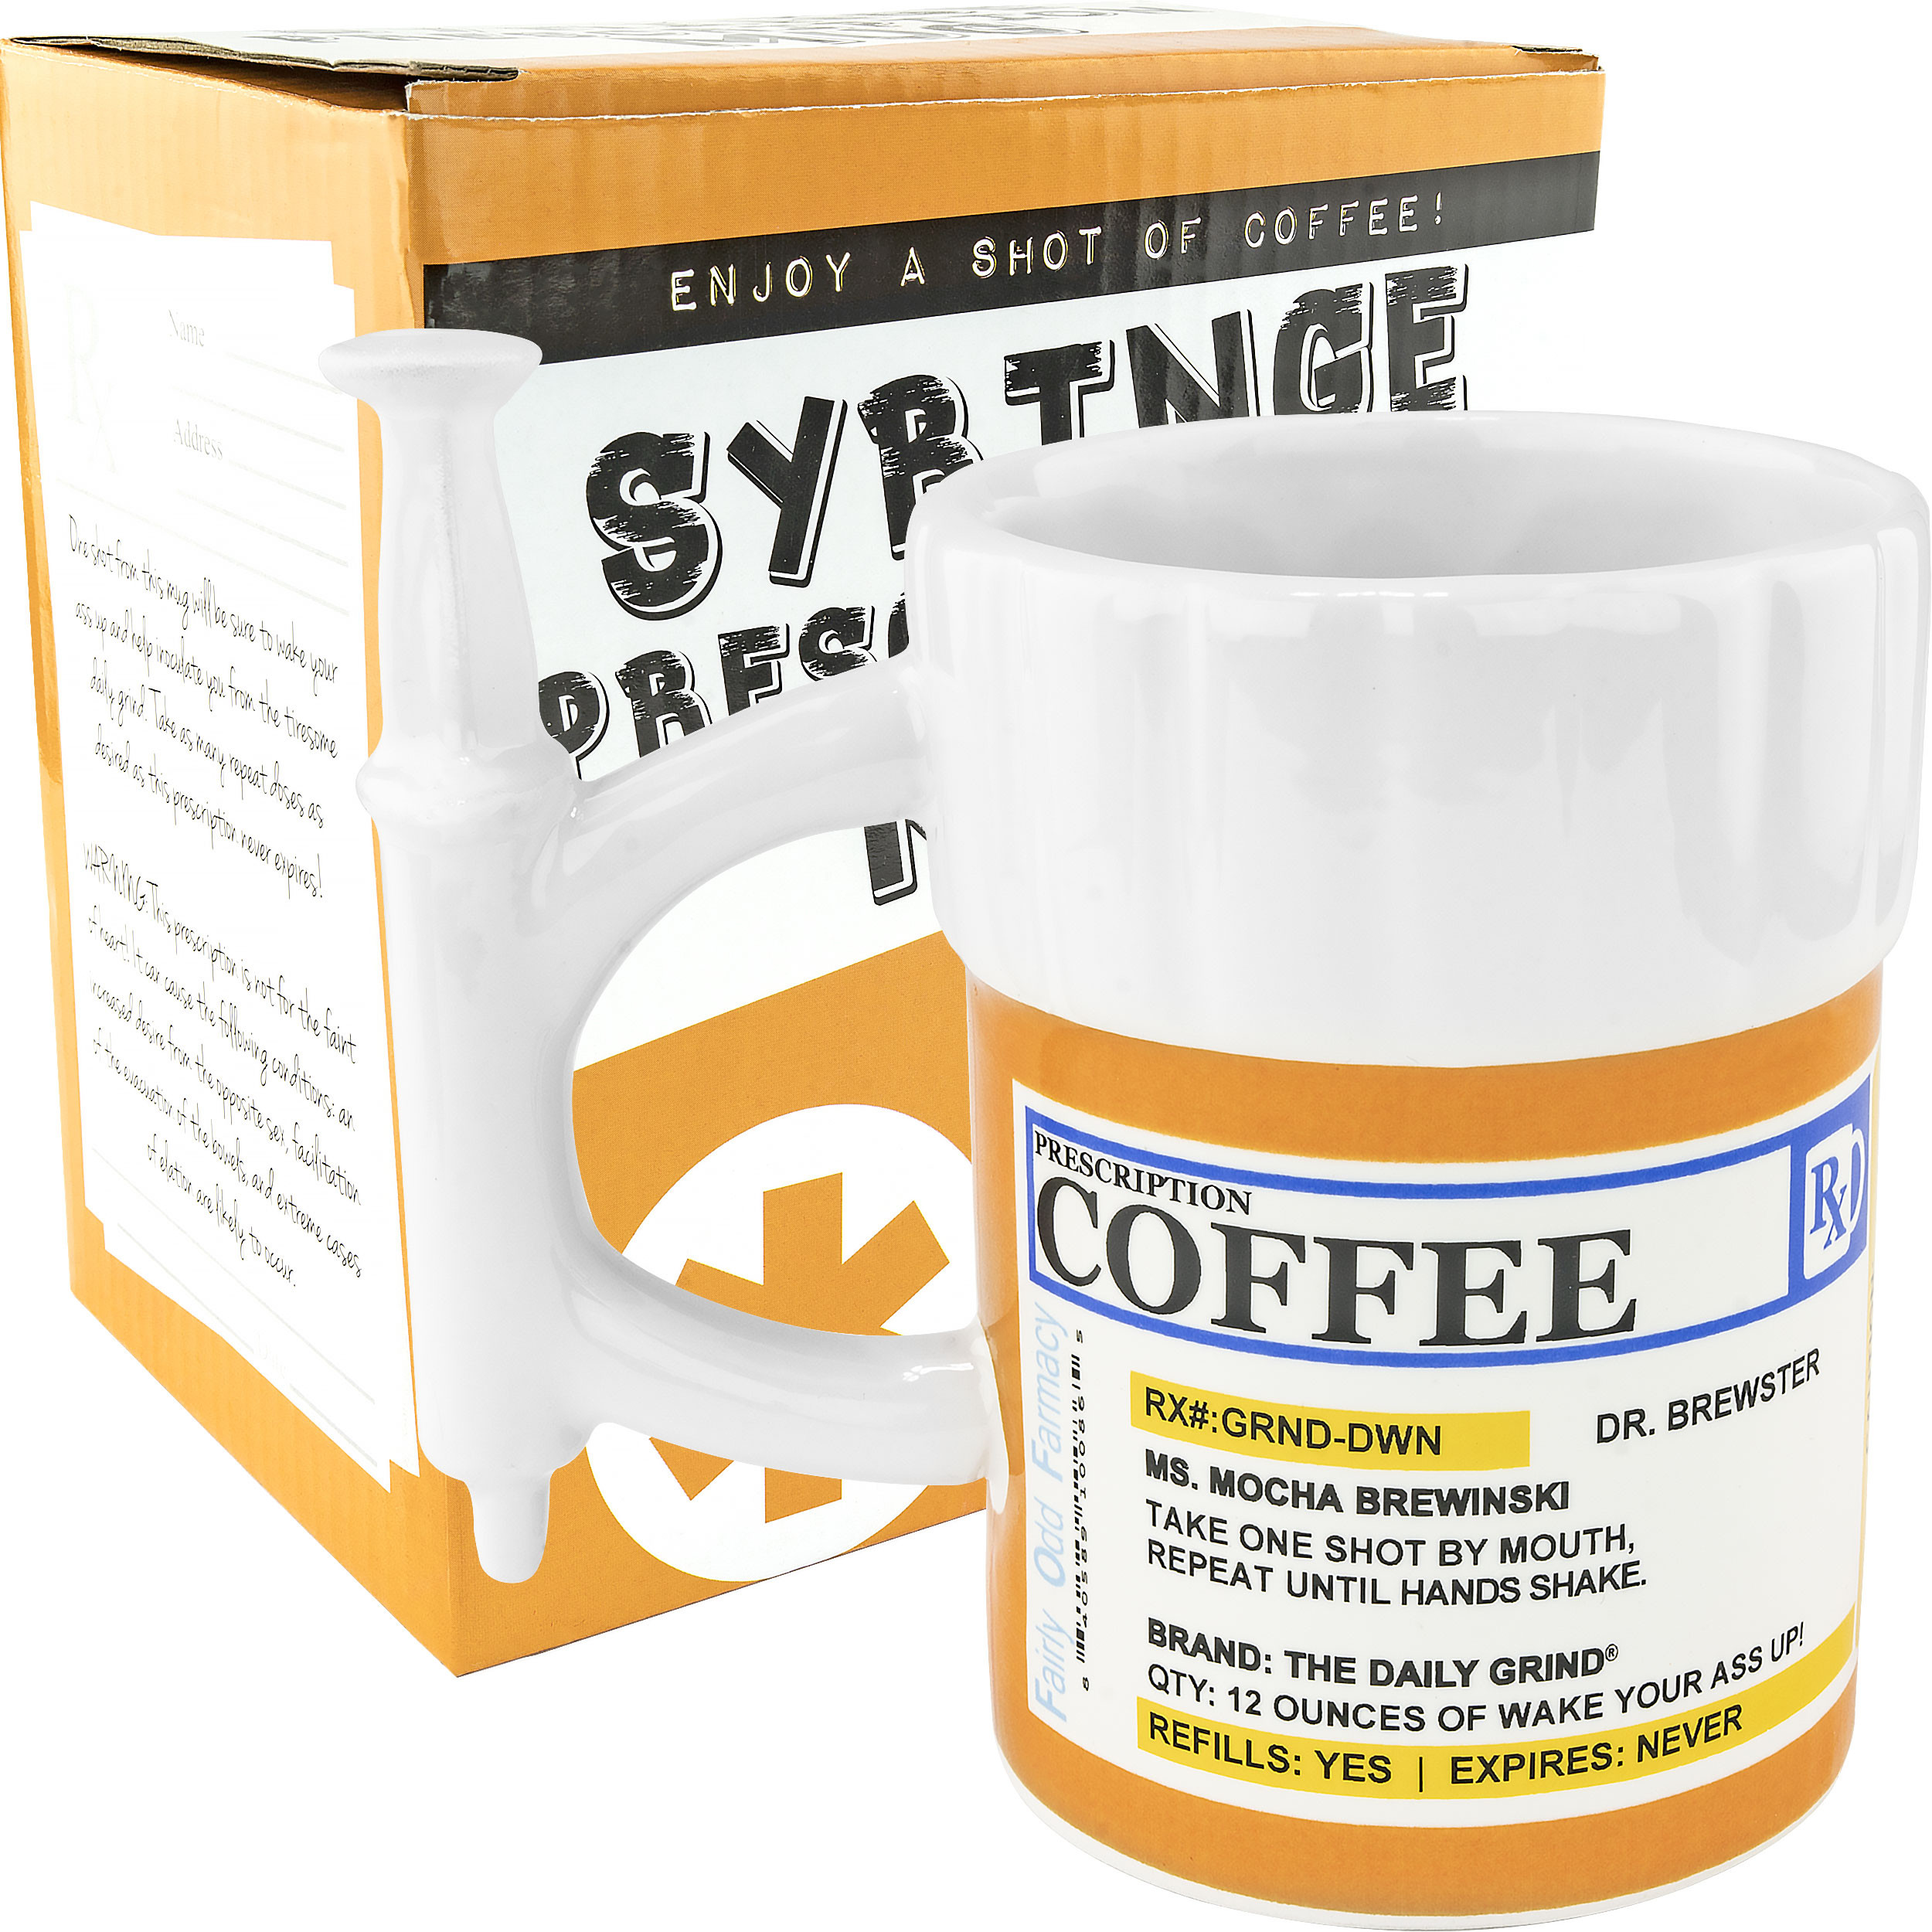 Prescription Syringe Coffee Mug